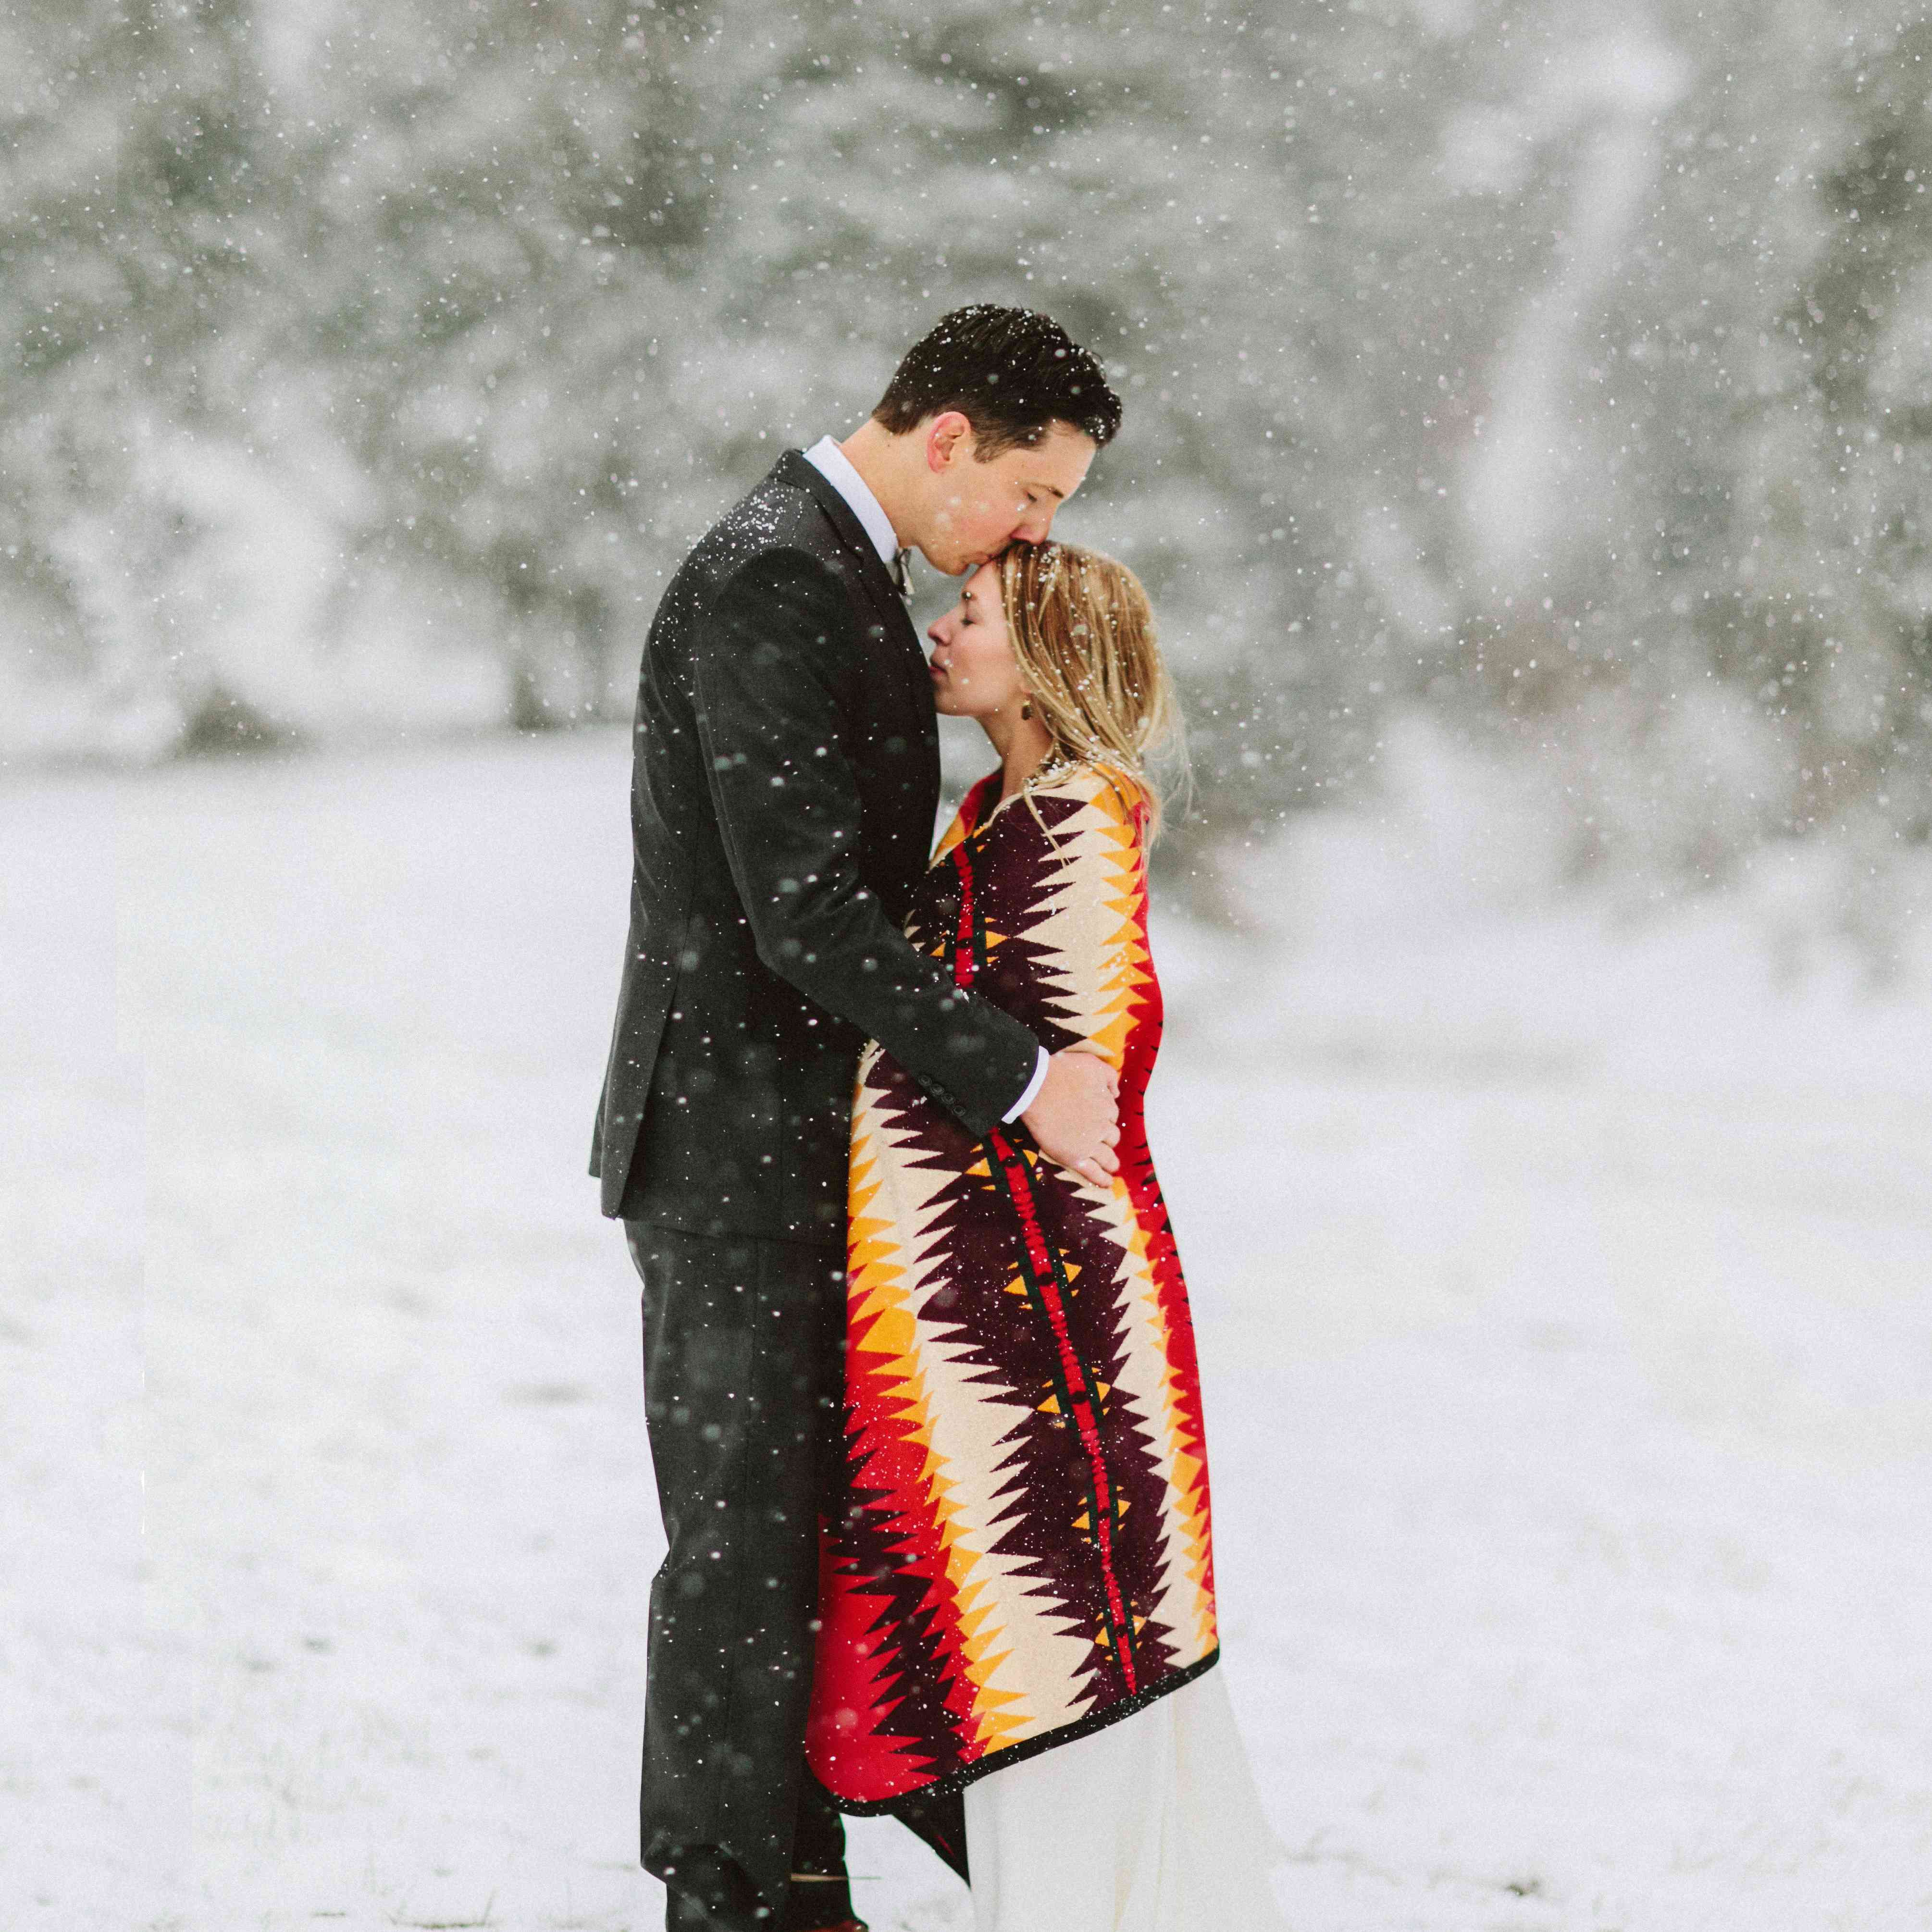 Groom kissing bride's forehead outside in the snow while bride is wrapped in colorful blanket